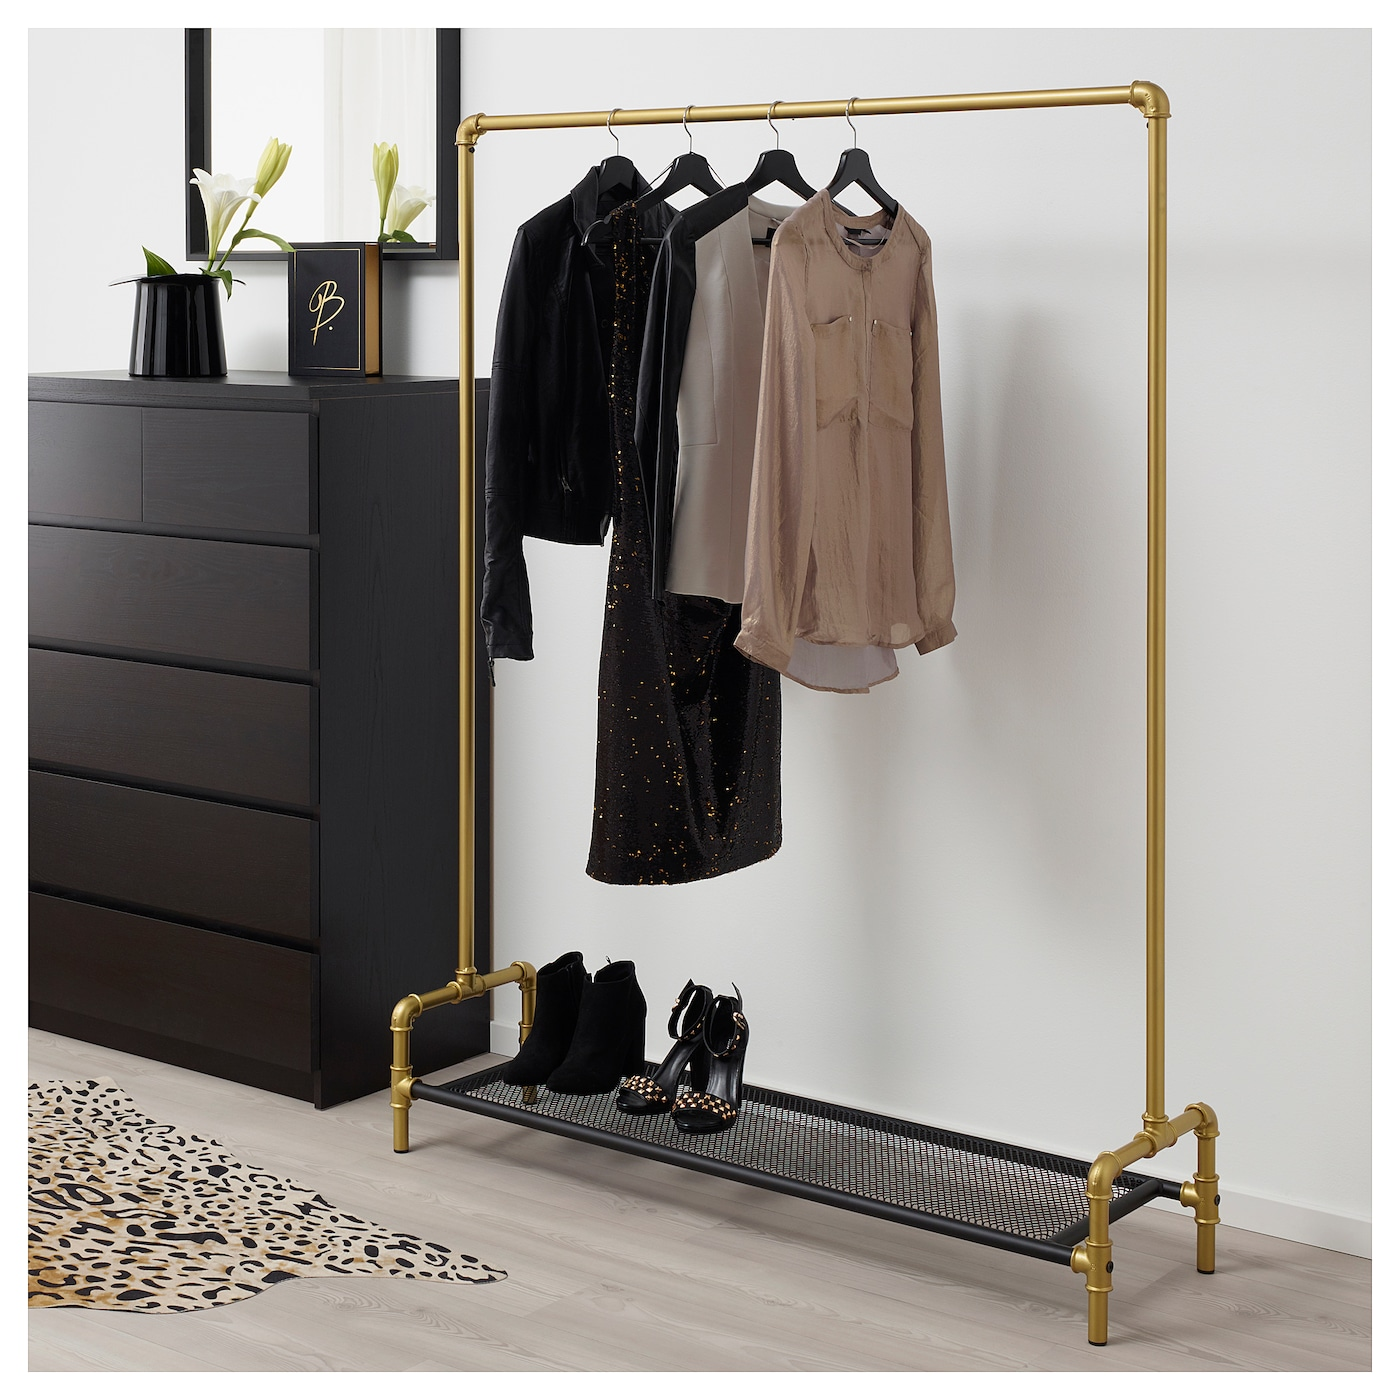 rod best garment clothes simplehouseware amazon clothing for customerpicks double com portable rack hanging